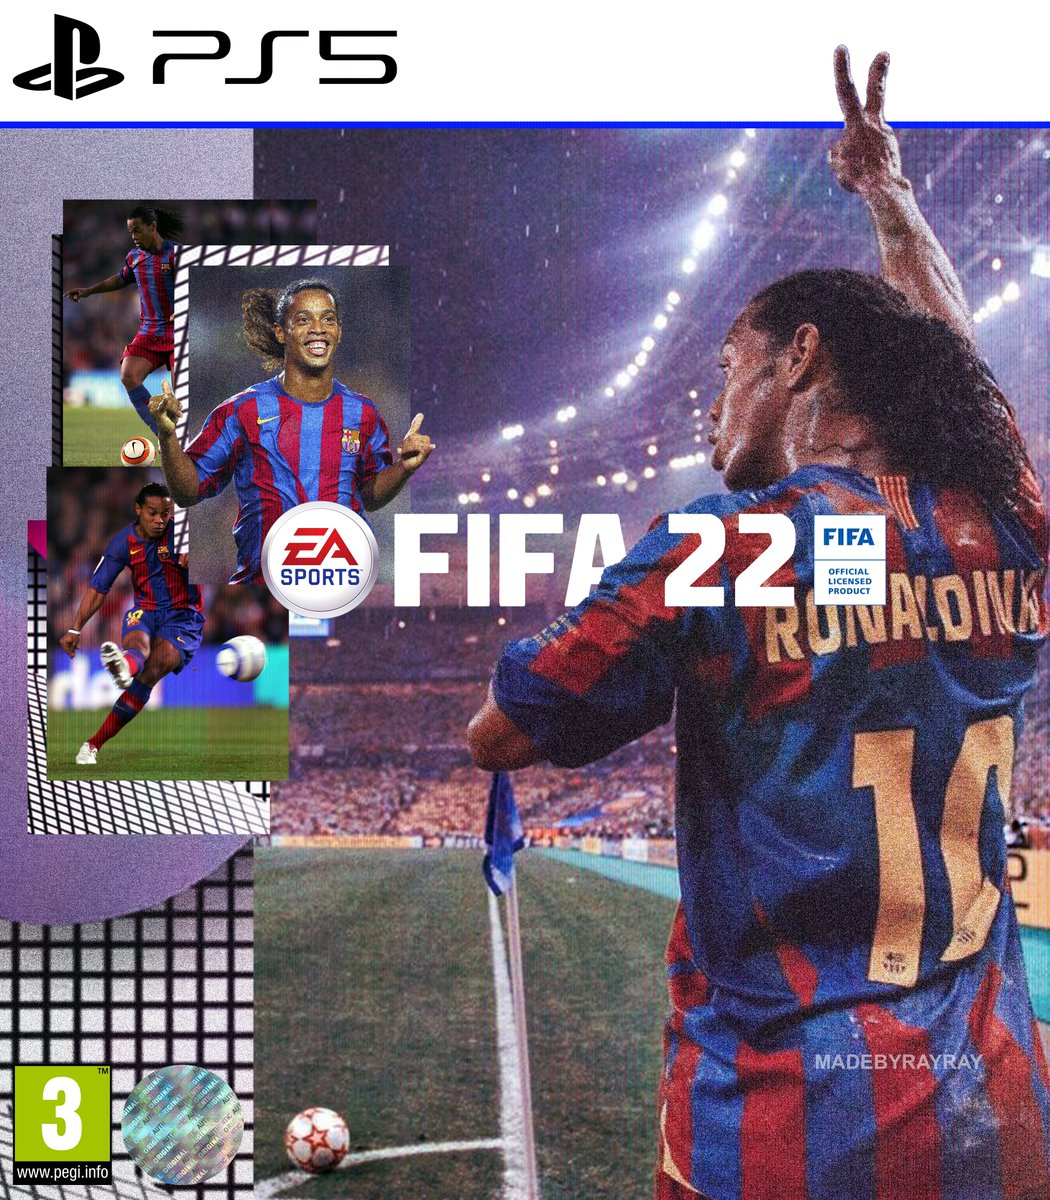 RT @MADEBYRAYRAY: FIFA 22 Concept covers by me.  [FC Barcelona x Real Madrid CF] https://t.co/1cGPVtbB7S